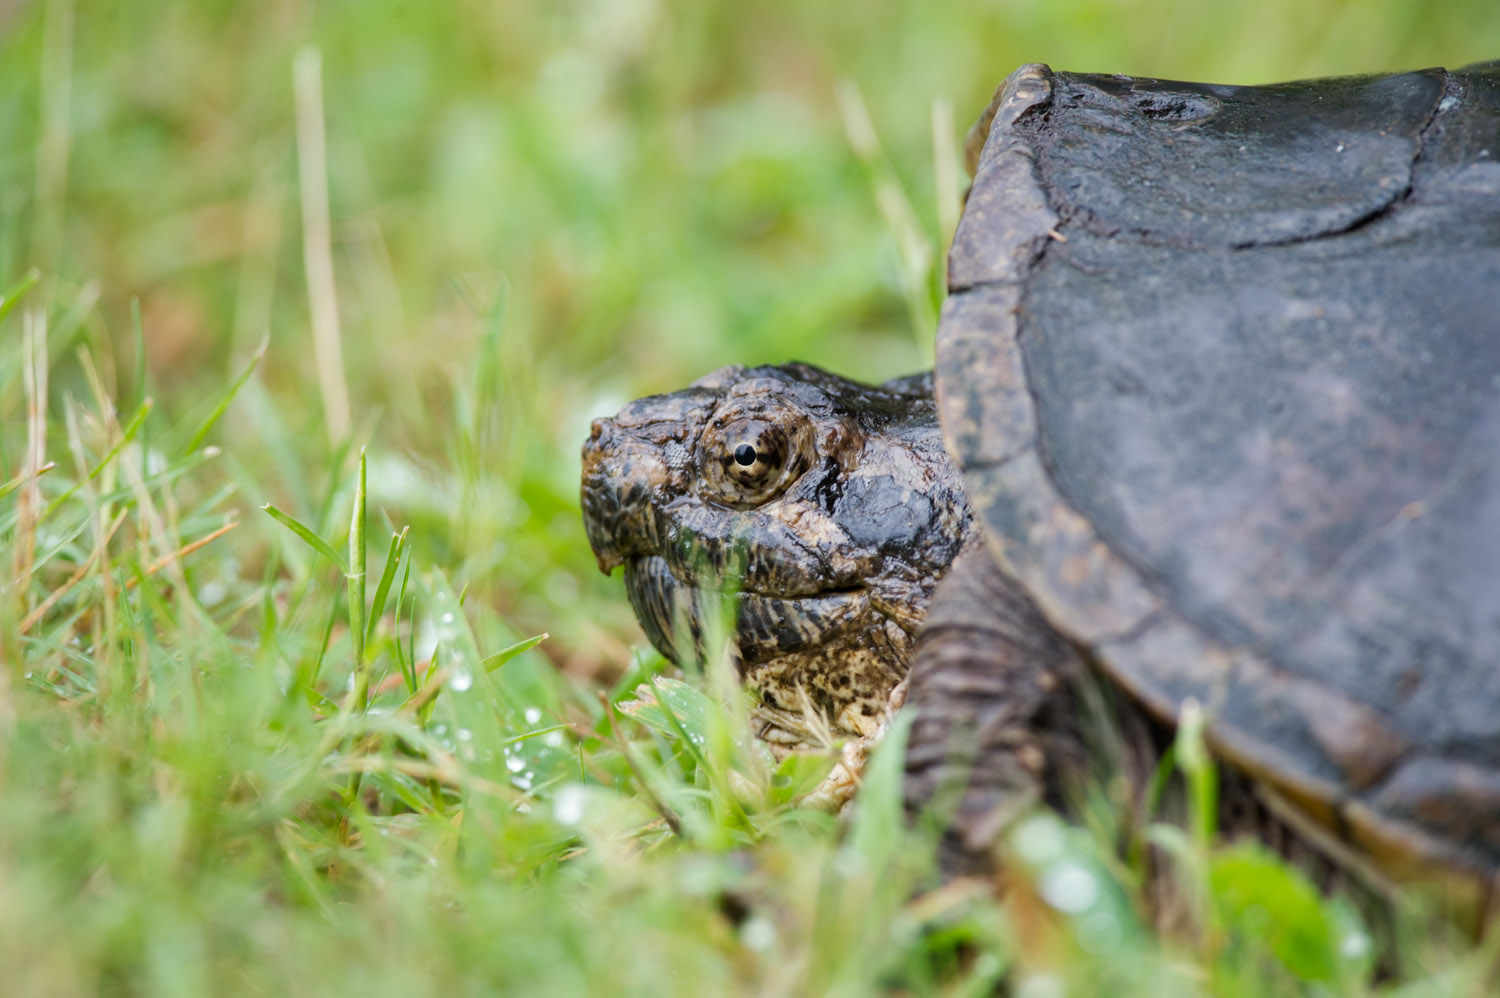 A medium sized snapping turtle that was crossing an open trail.